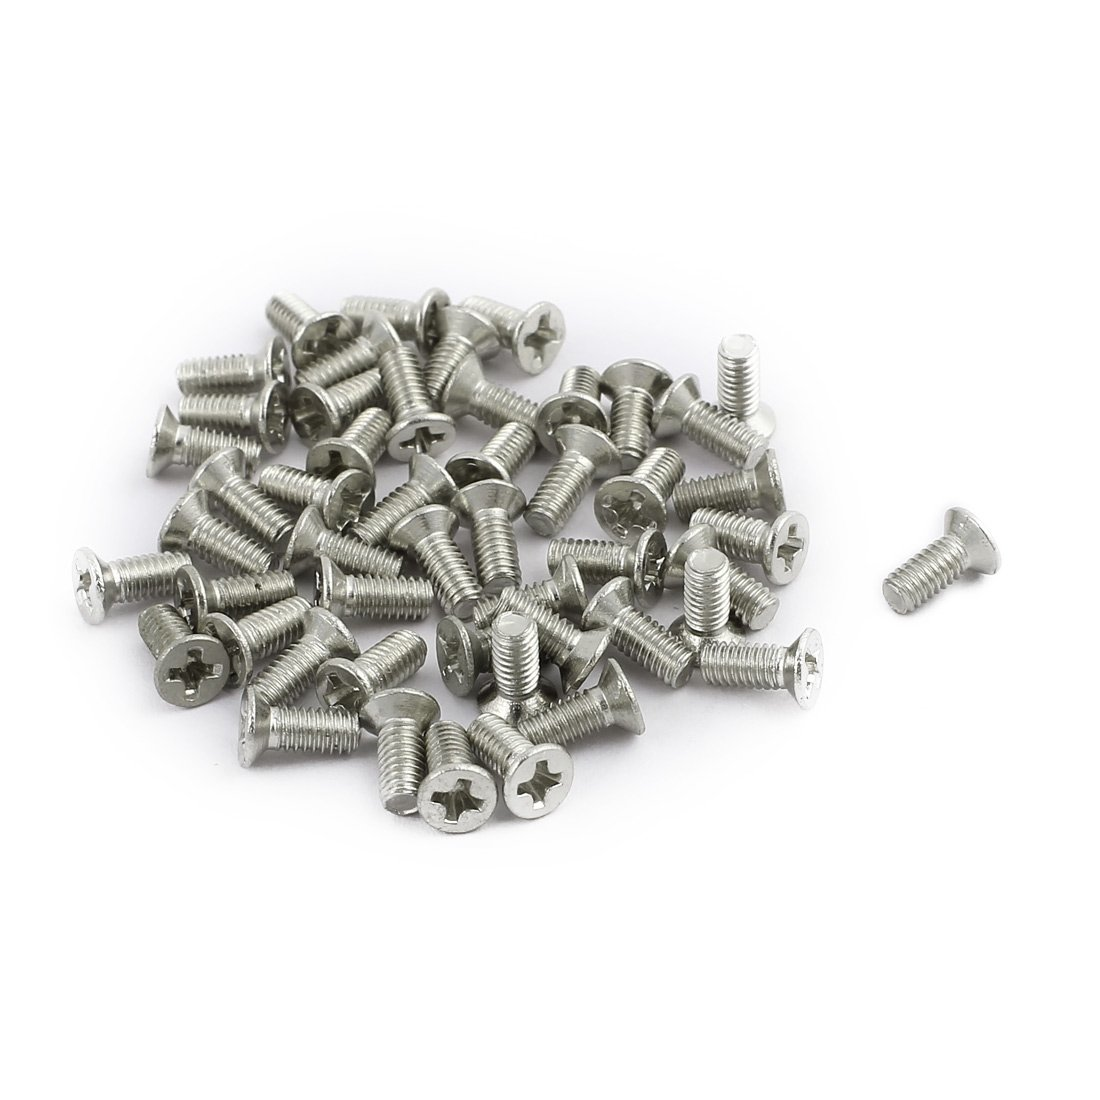 uxcell 50pcs M2.5x4mm Stainless Steel Countersunk Flat Head Phillips Machine Screws Bolts